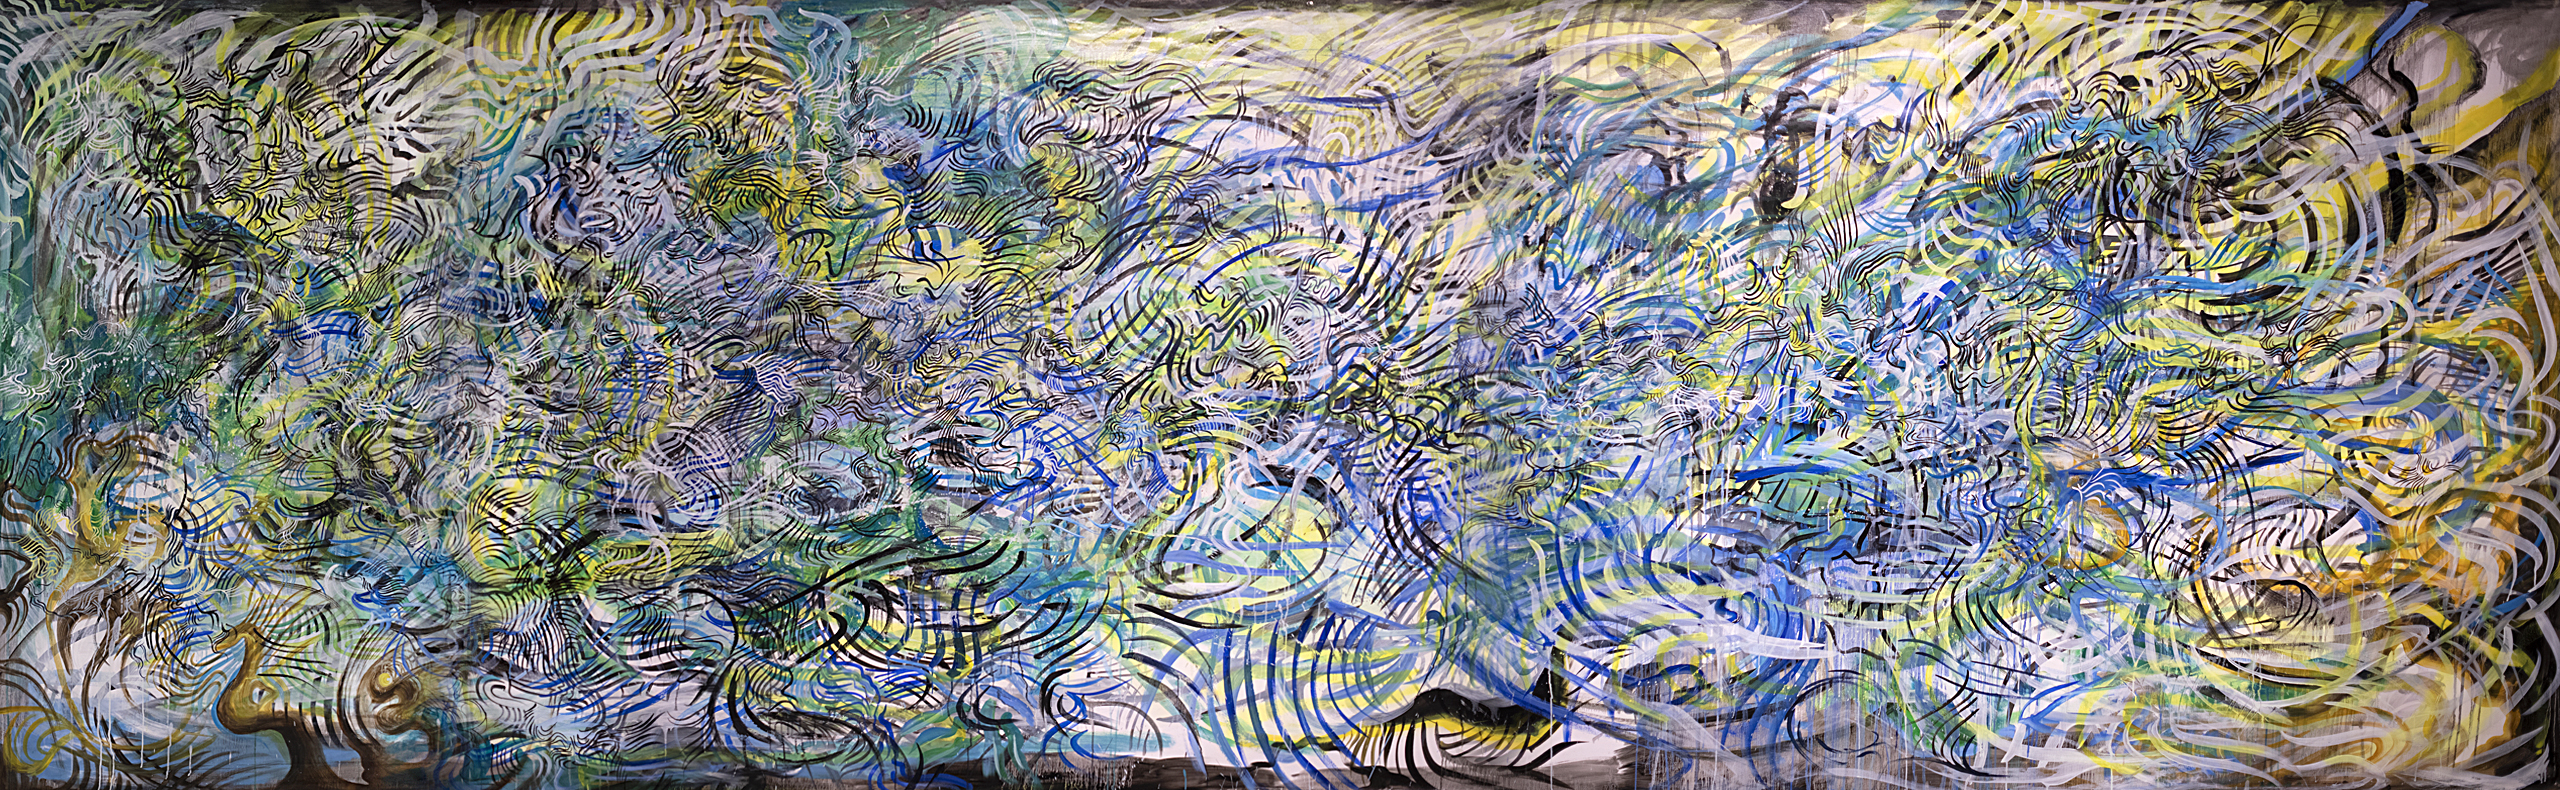 "La Primavera - mixed media on canvas - 212"" x 63"""